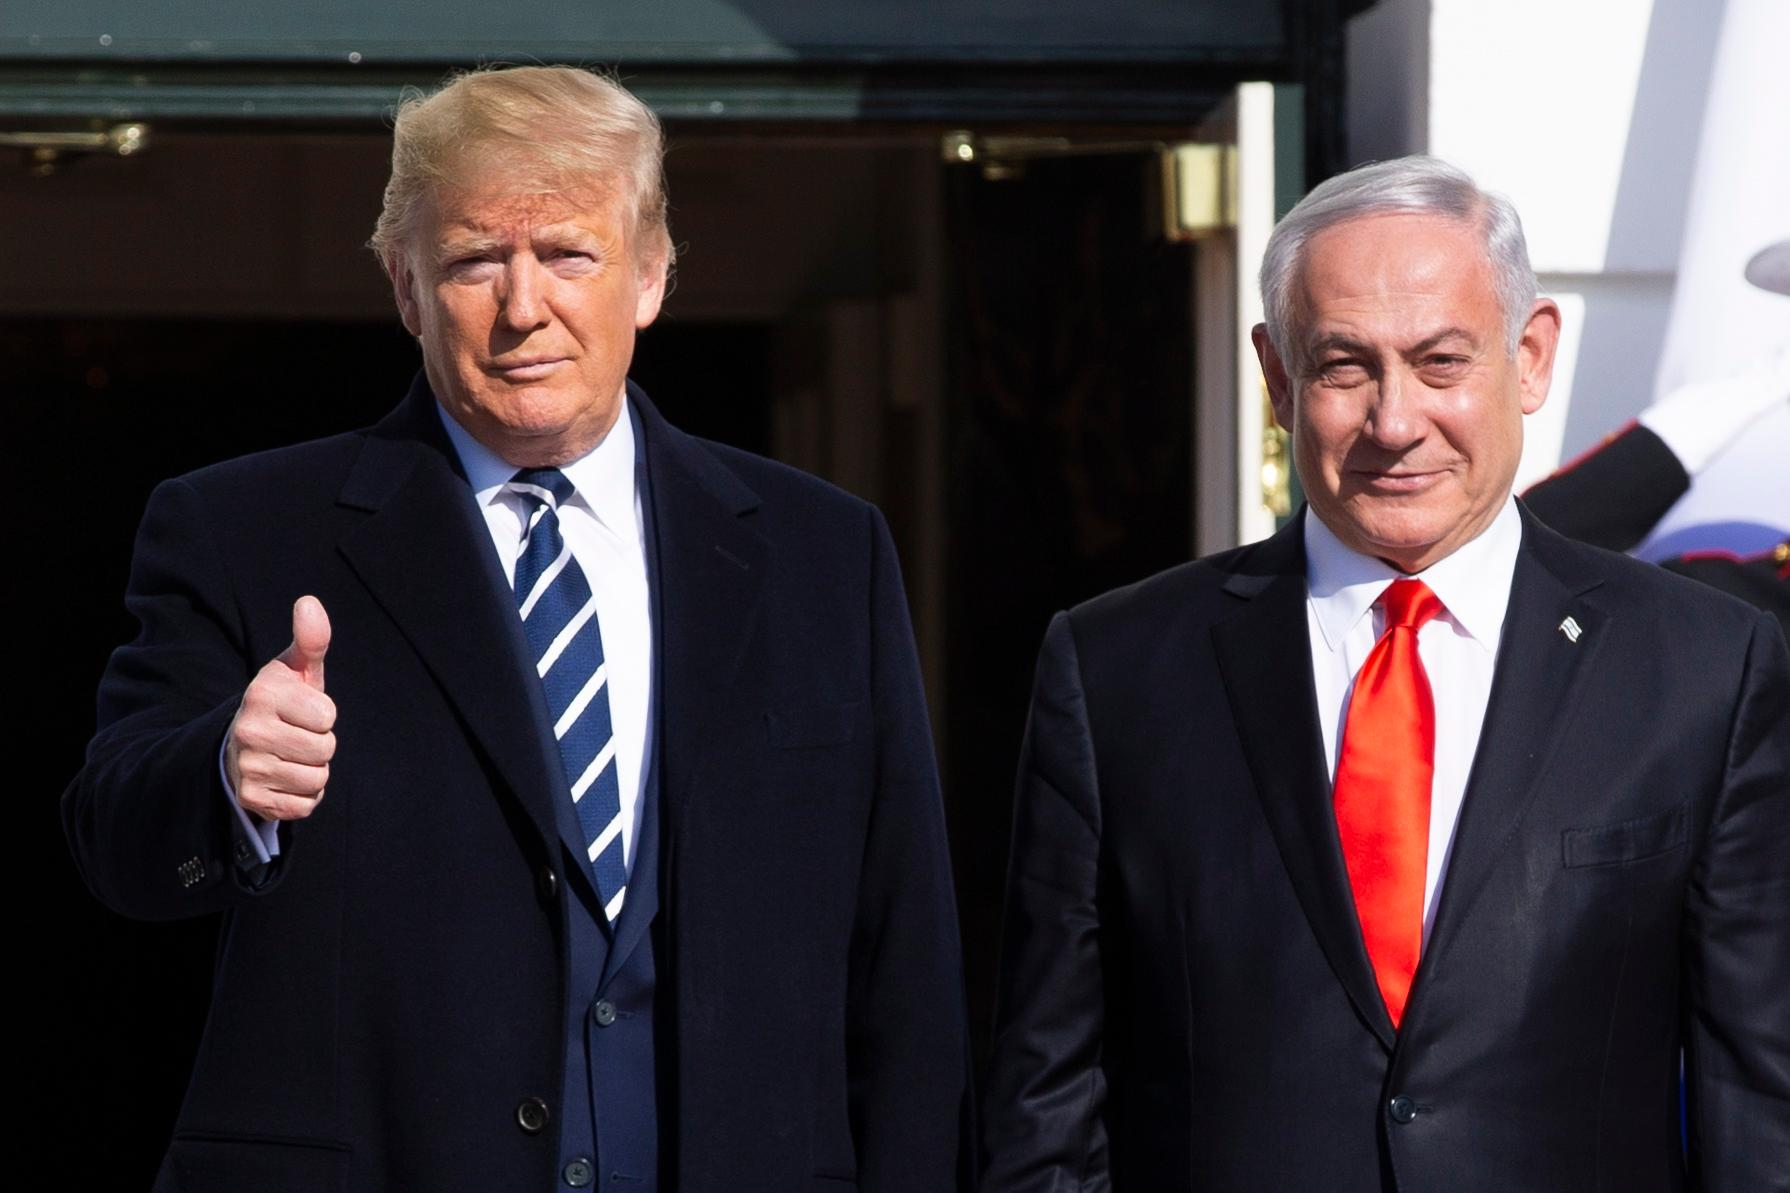 Trump to unveil peace plan Tuesday despite Palestinian rejections